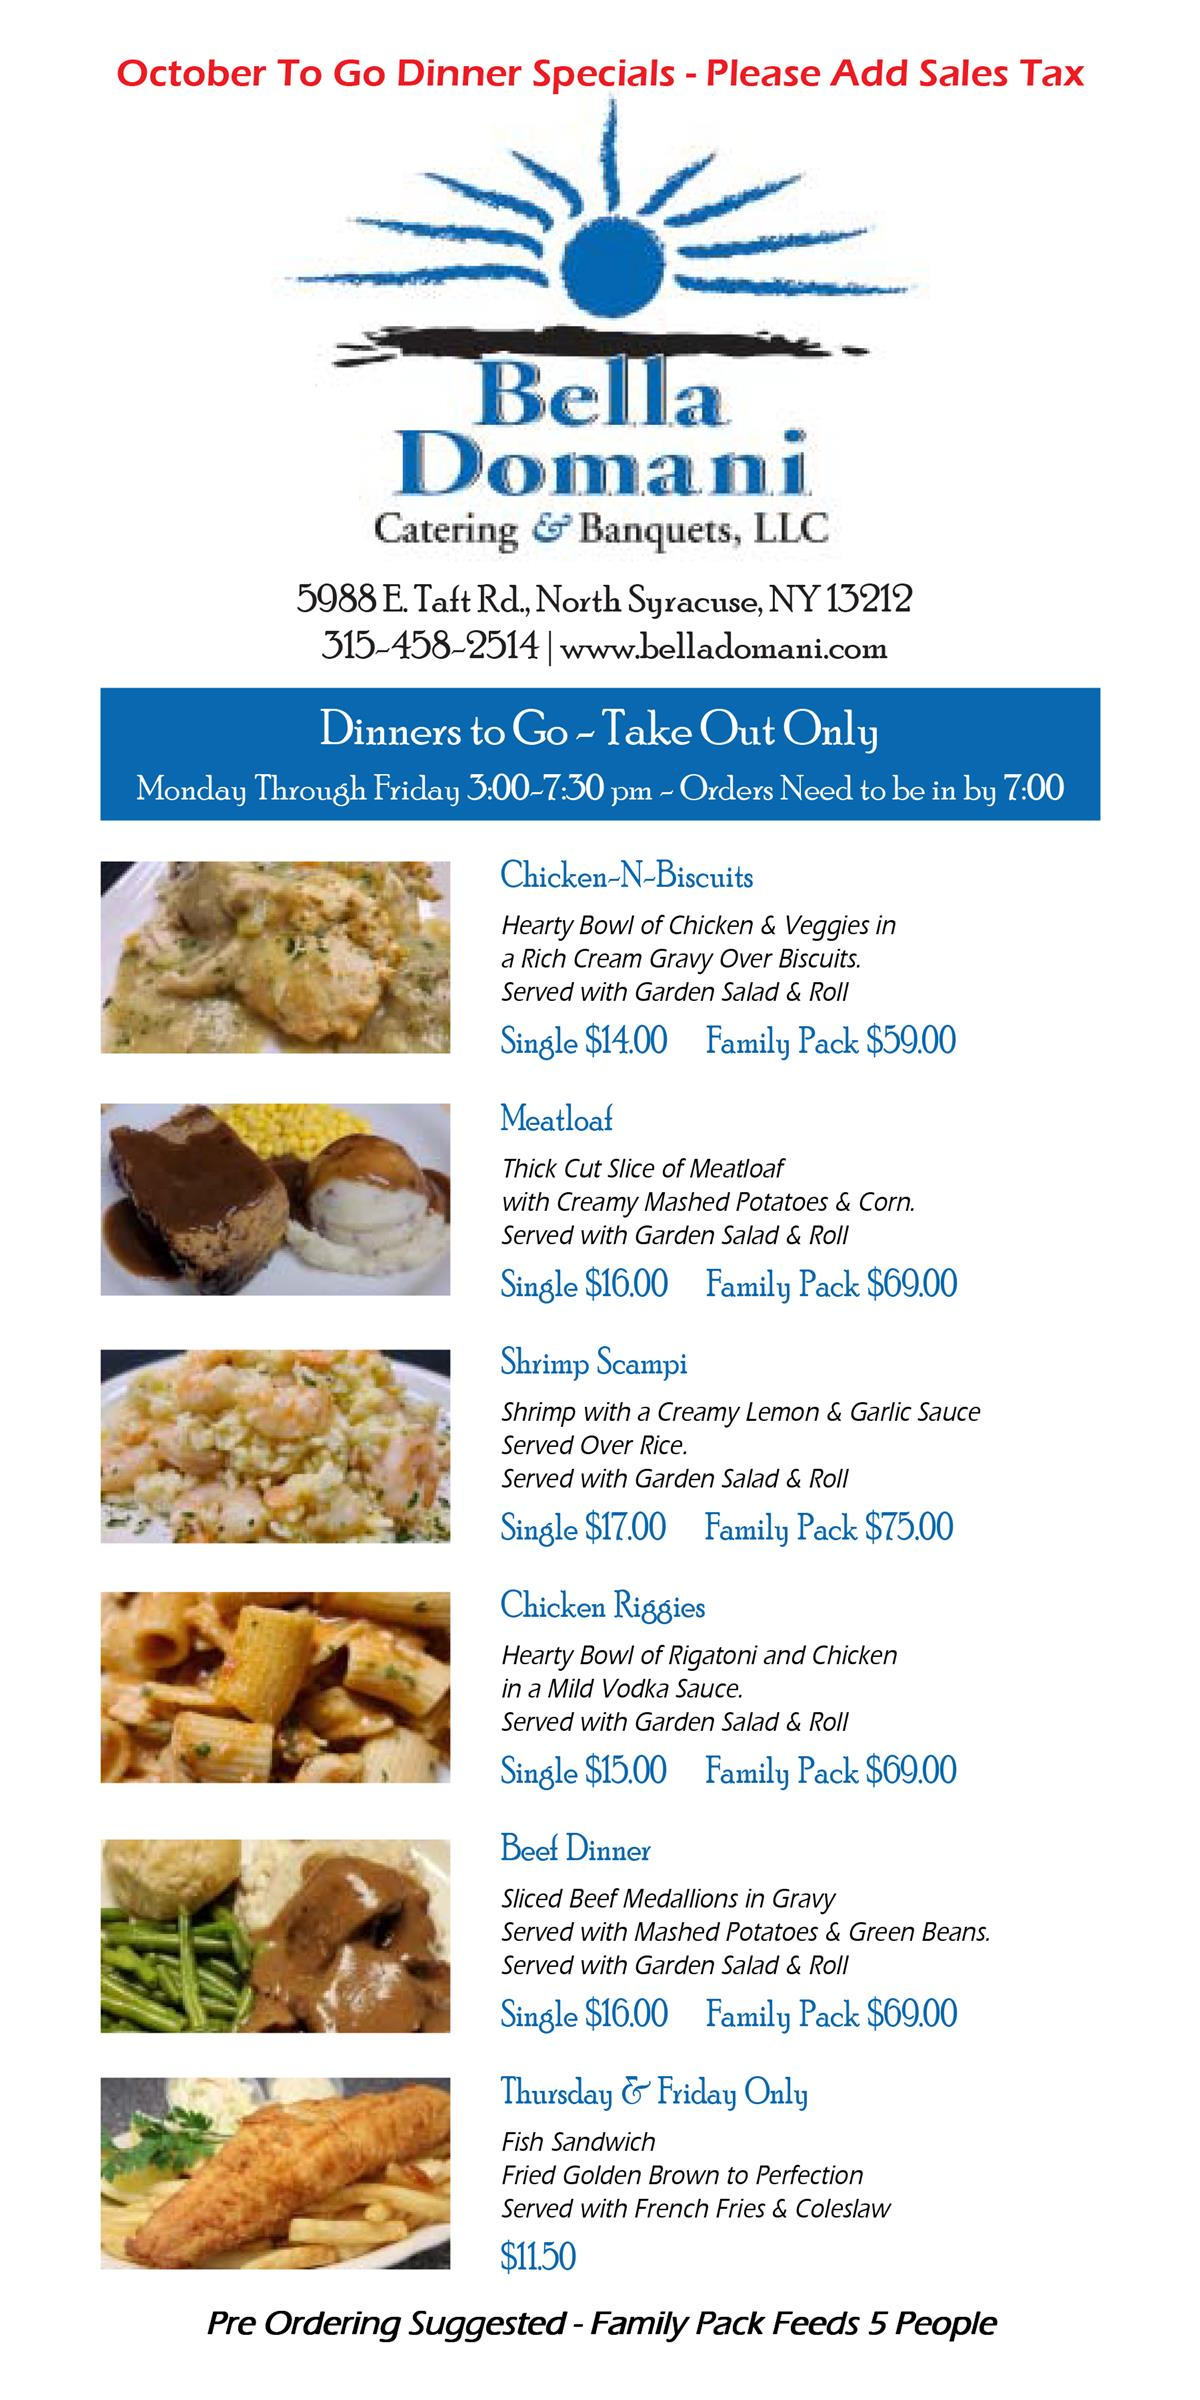 Monthly specials from Octobers 1st to October 30th 3:00- 7:30 pm Monday through Friday, Chicken -N-Biscuits, Meatloaf,Shrimp Scampi,Chicken Riggies,Beef Dinner, and on Thursdays and Fridays only there is a fish sandwich avalaible for $11.50. Pre Ordering Suggested - Family Pack feeds 5 People